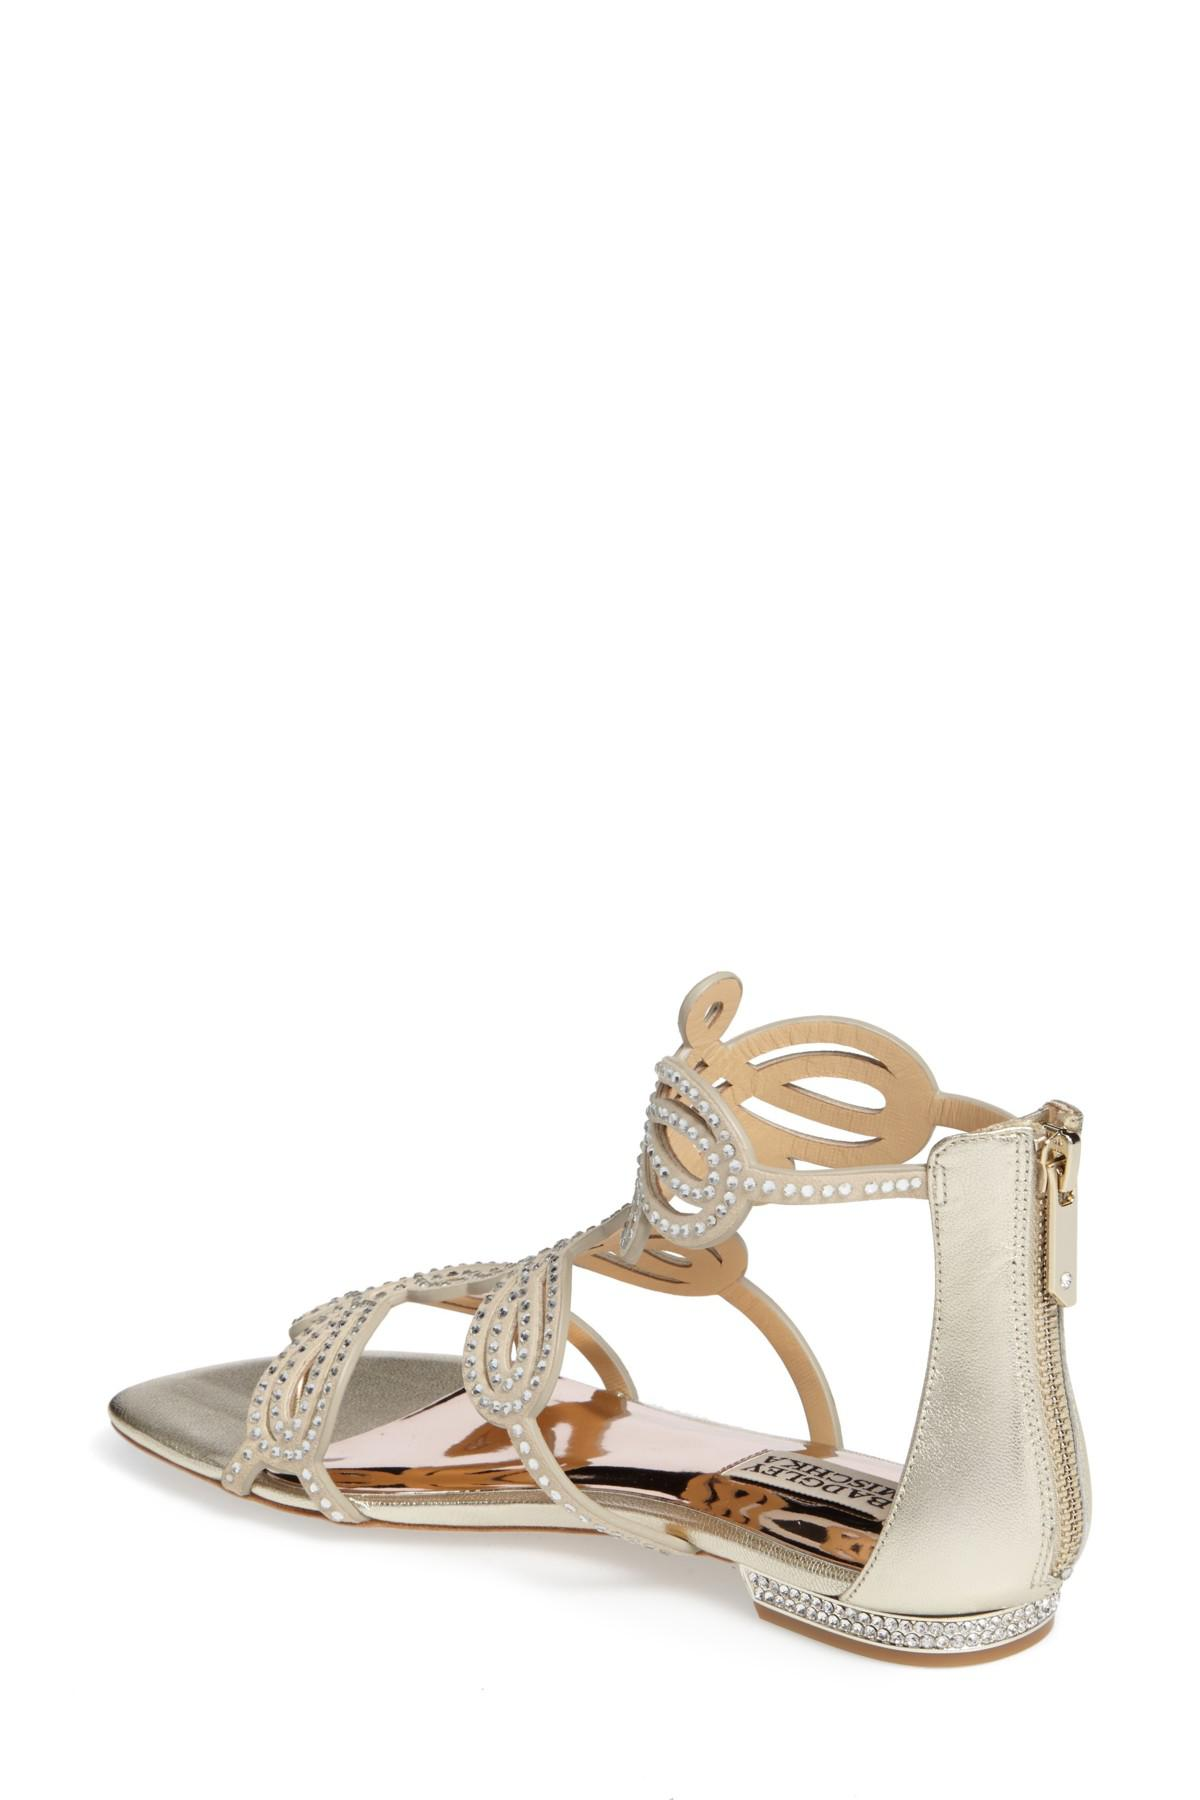 d13c7c94c2a0aa Lyst - Badgley Mischka Tempe Embellished Suede Sandal